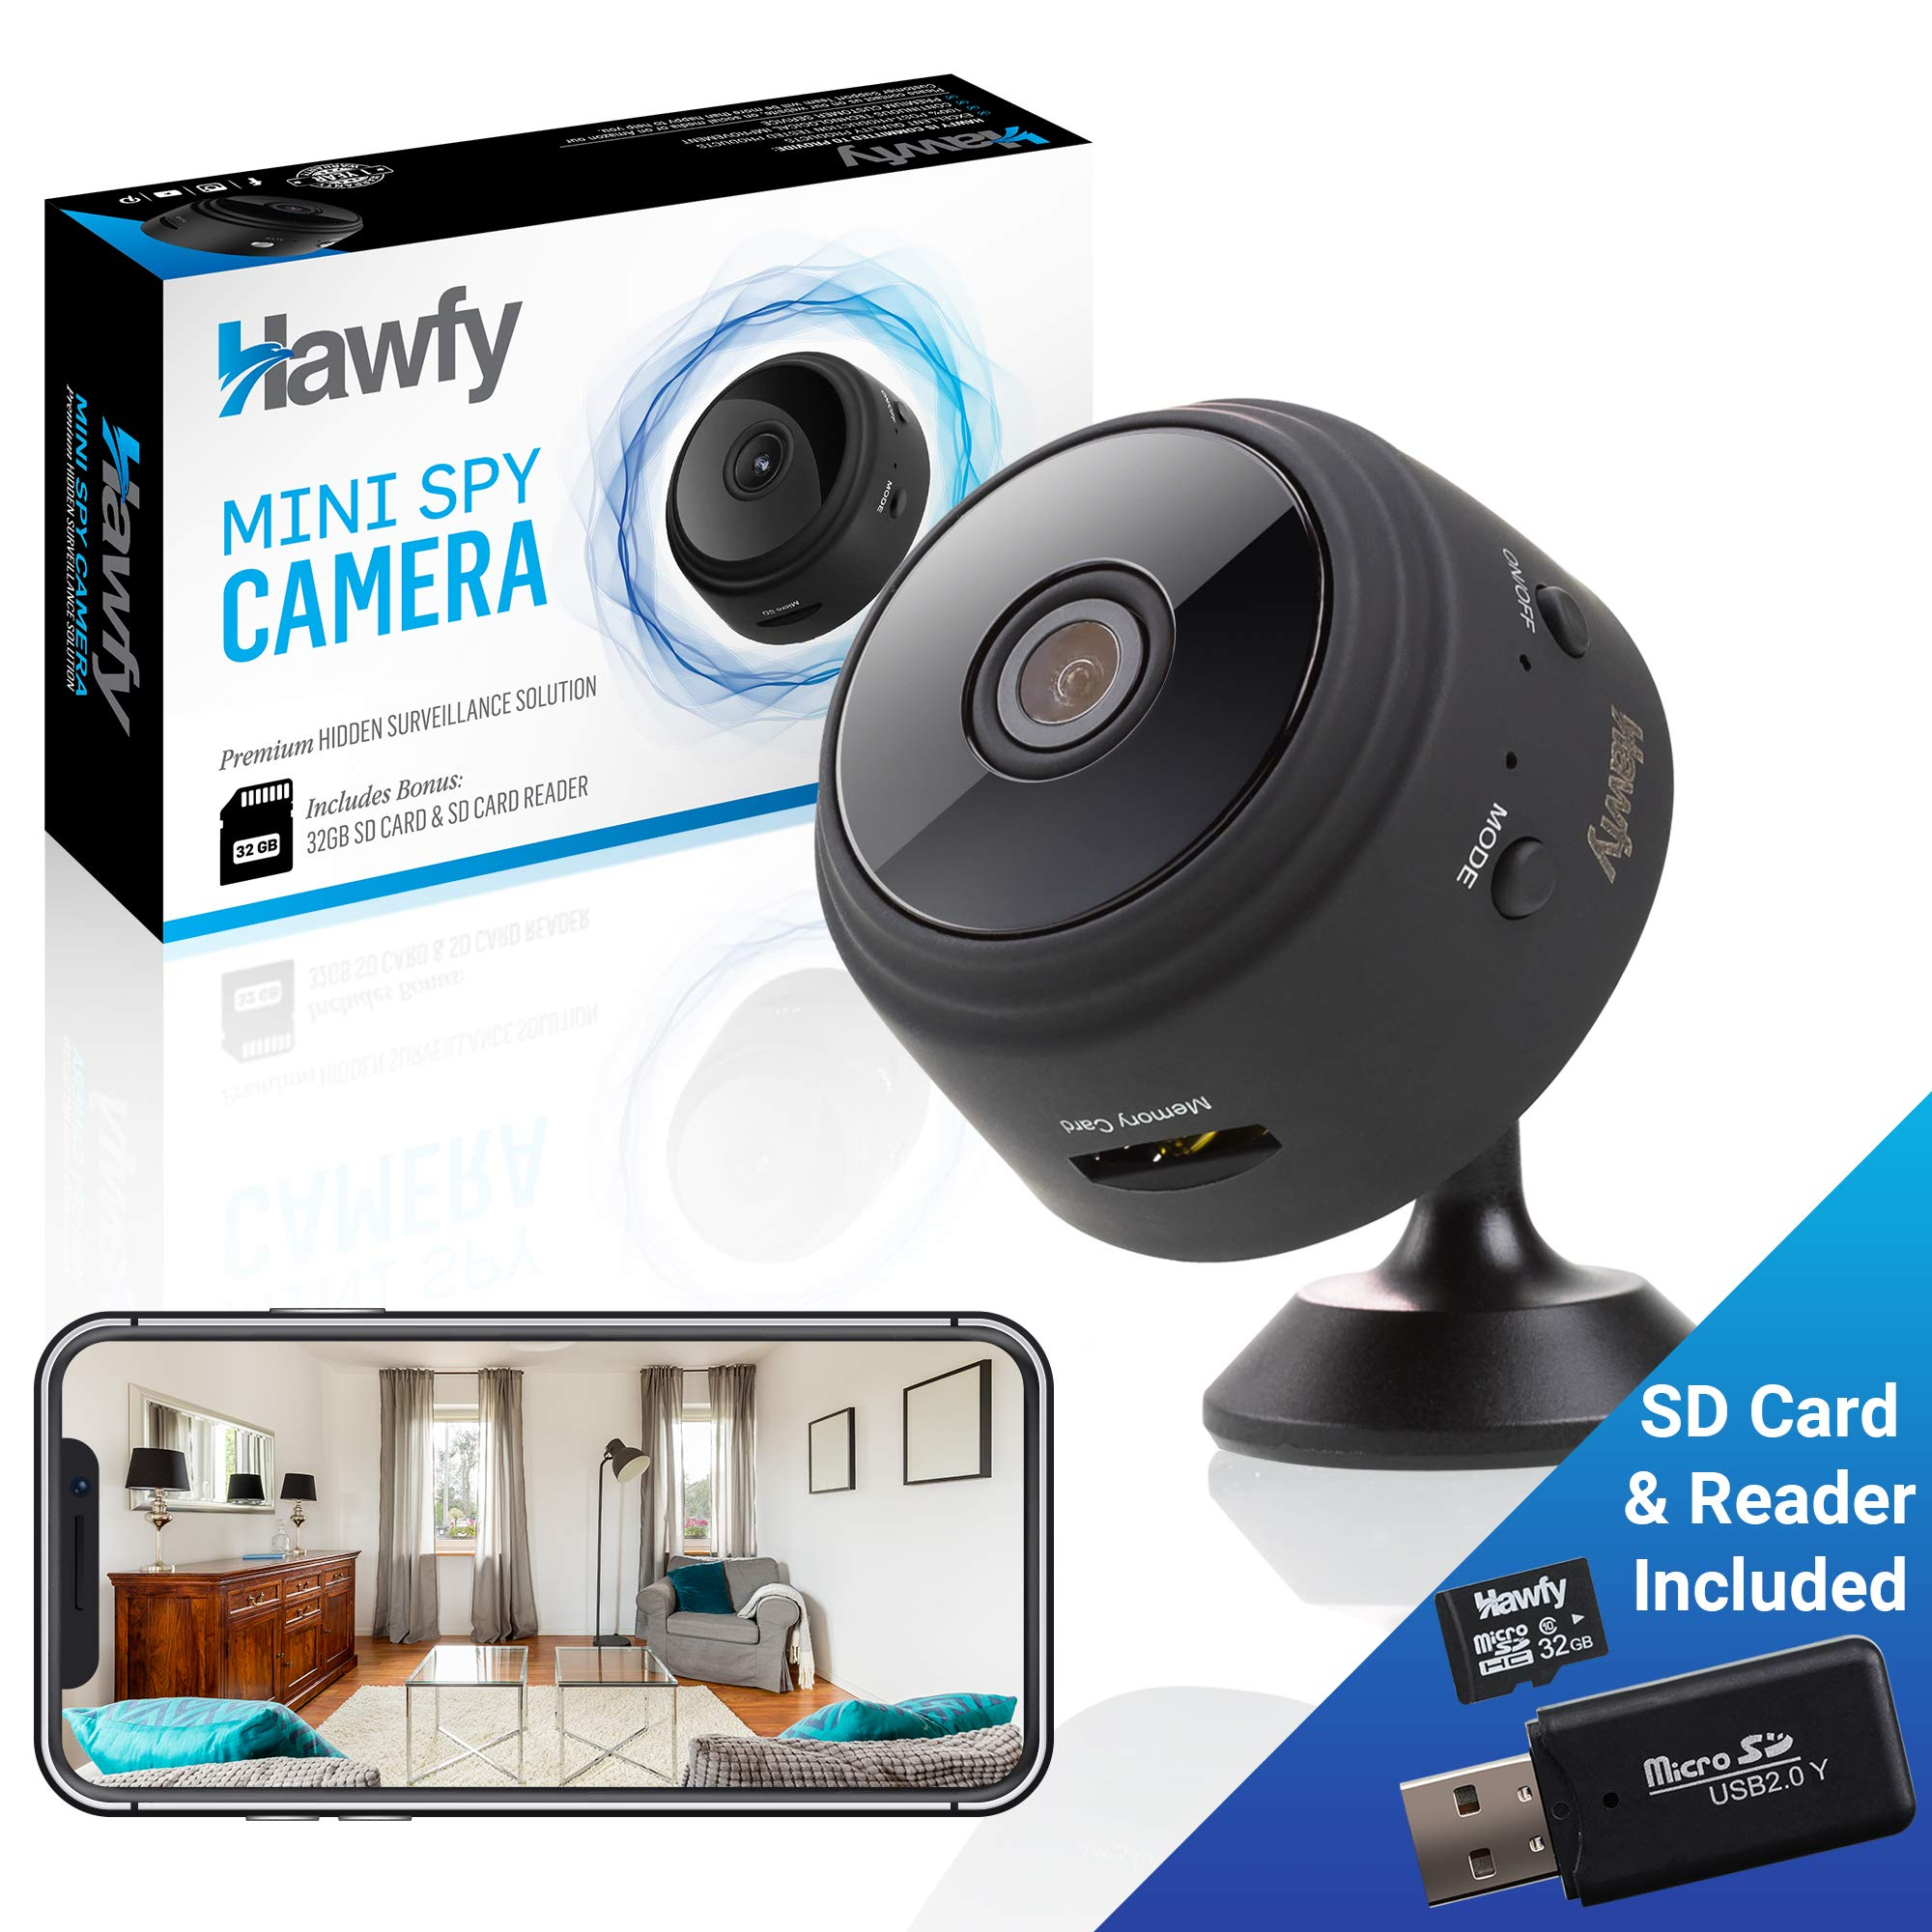 Hawfy Mini HD Wireless Hidden Camera - Magnetic Feature for Easy Installation with SD Card and Reader - Smart Motion Detection, Instant Push Notifications, Night Vision Spy Cam - Mini Spy Camera by Hawfy